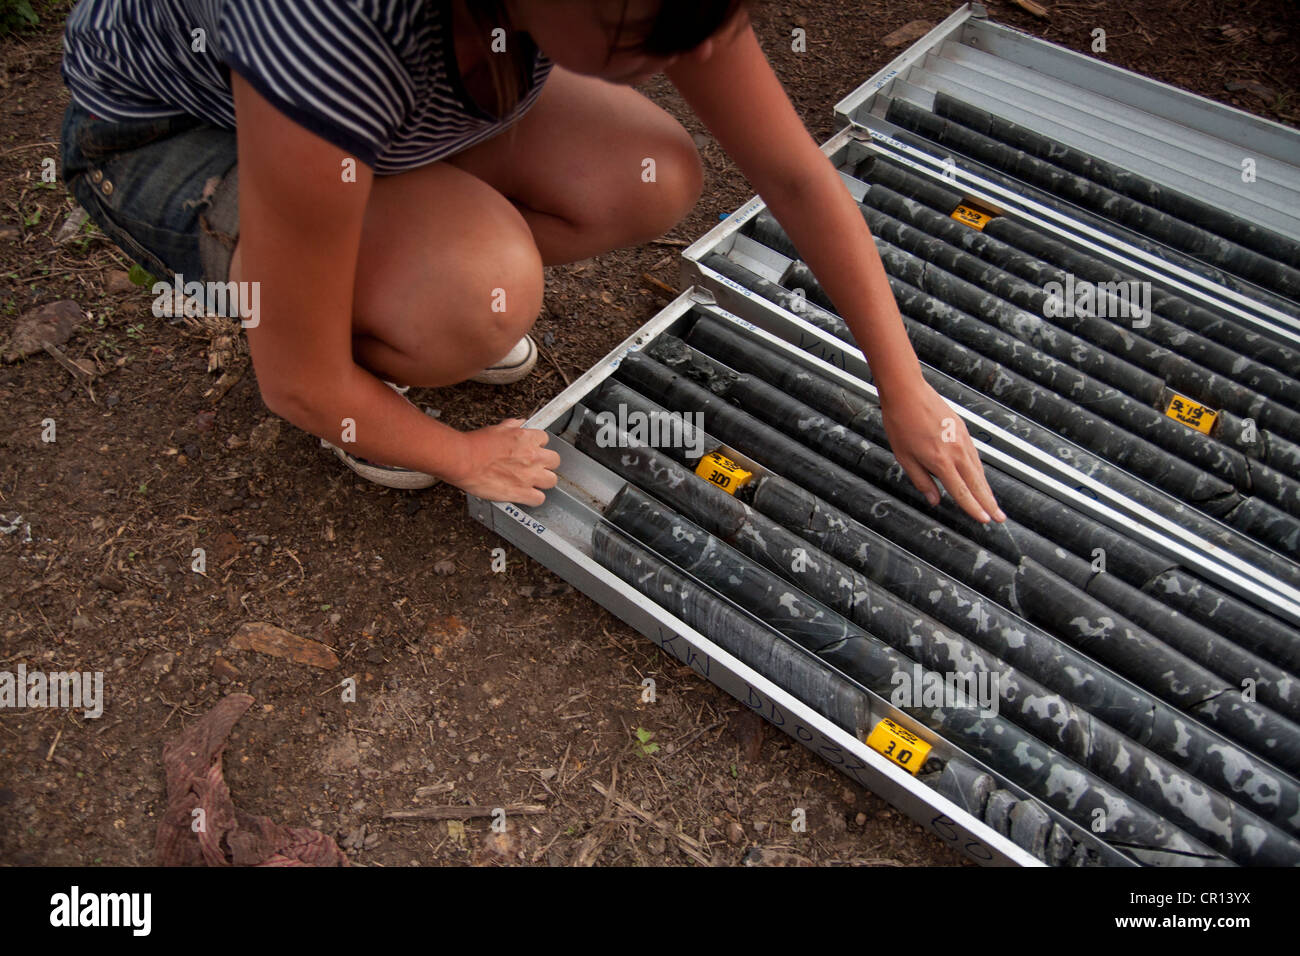 Female Geologist looking over drill core samples used in mining exploration - Stock Image